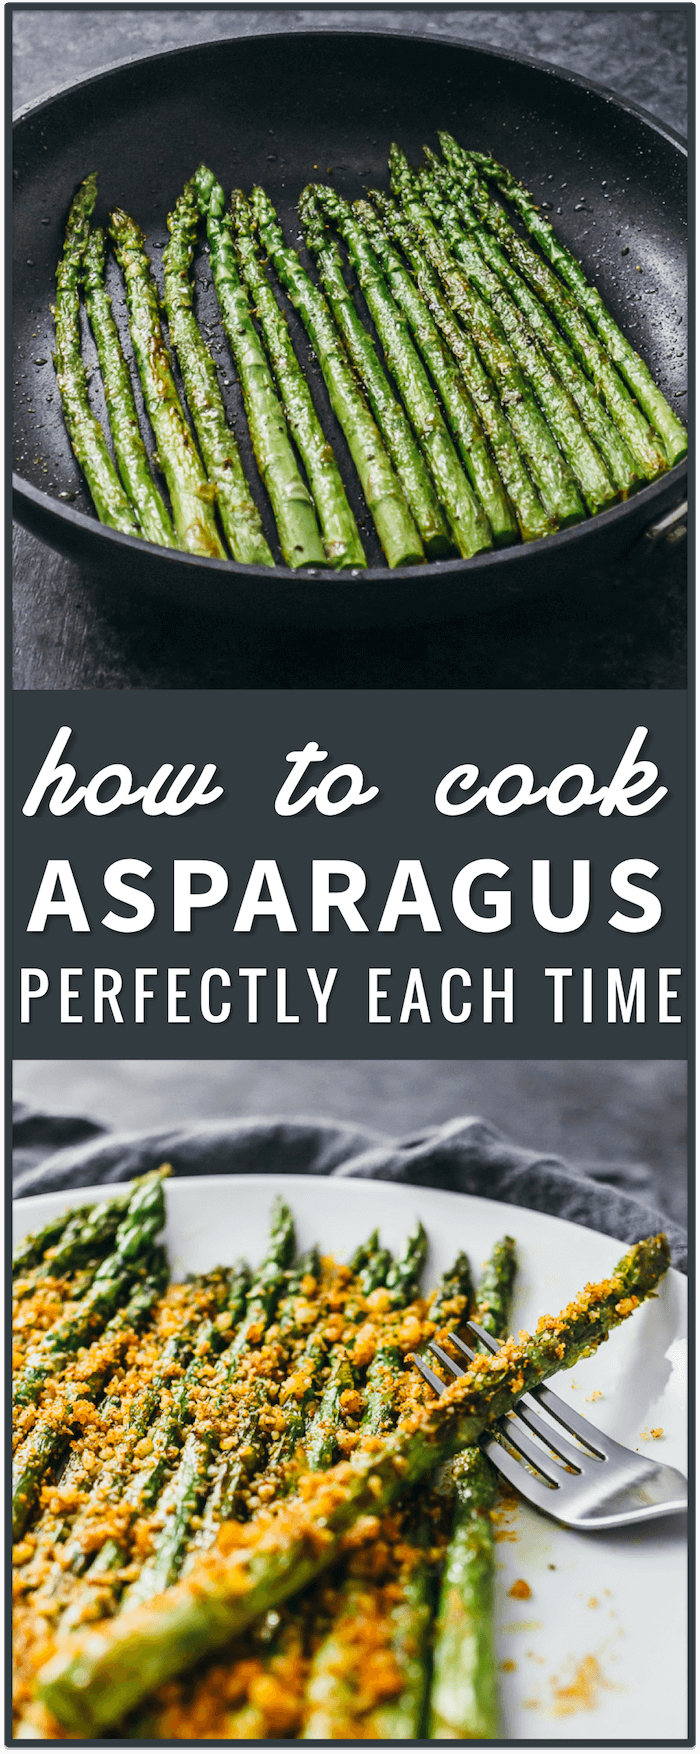 how to cook asparagus perfectly each time, recipes, vegetarian, easy, dinner, side dish, appetizer, baked, roasted, parmesan, cheese, paprika, sauteed, grilled, steamed